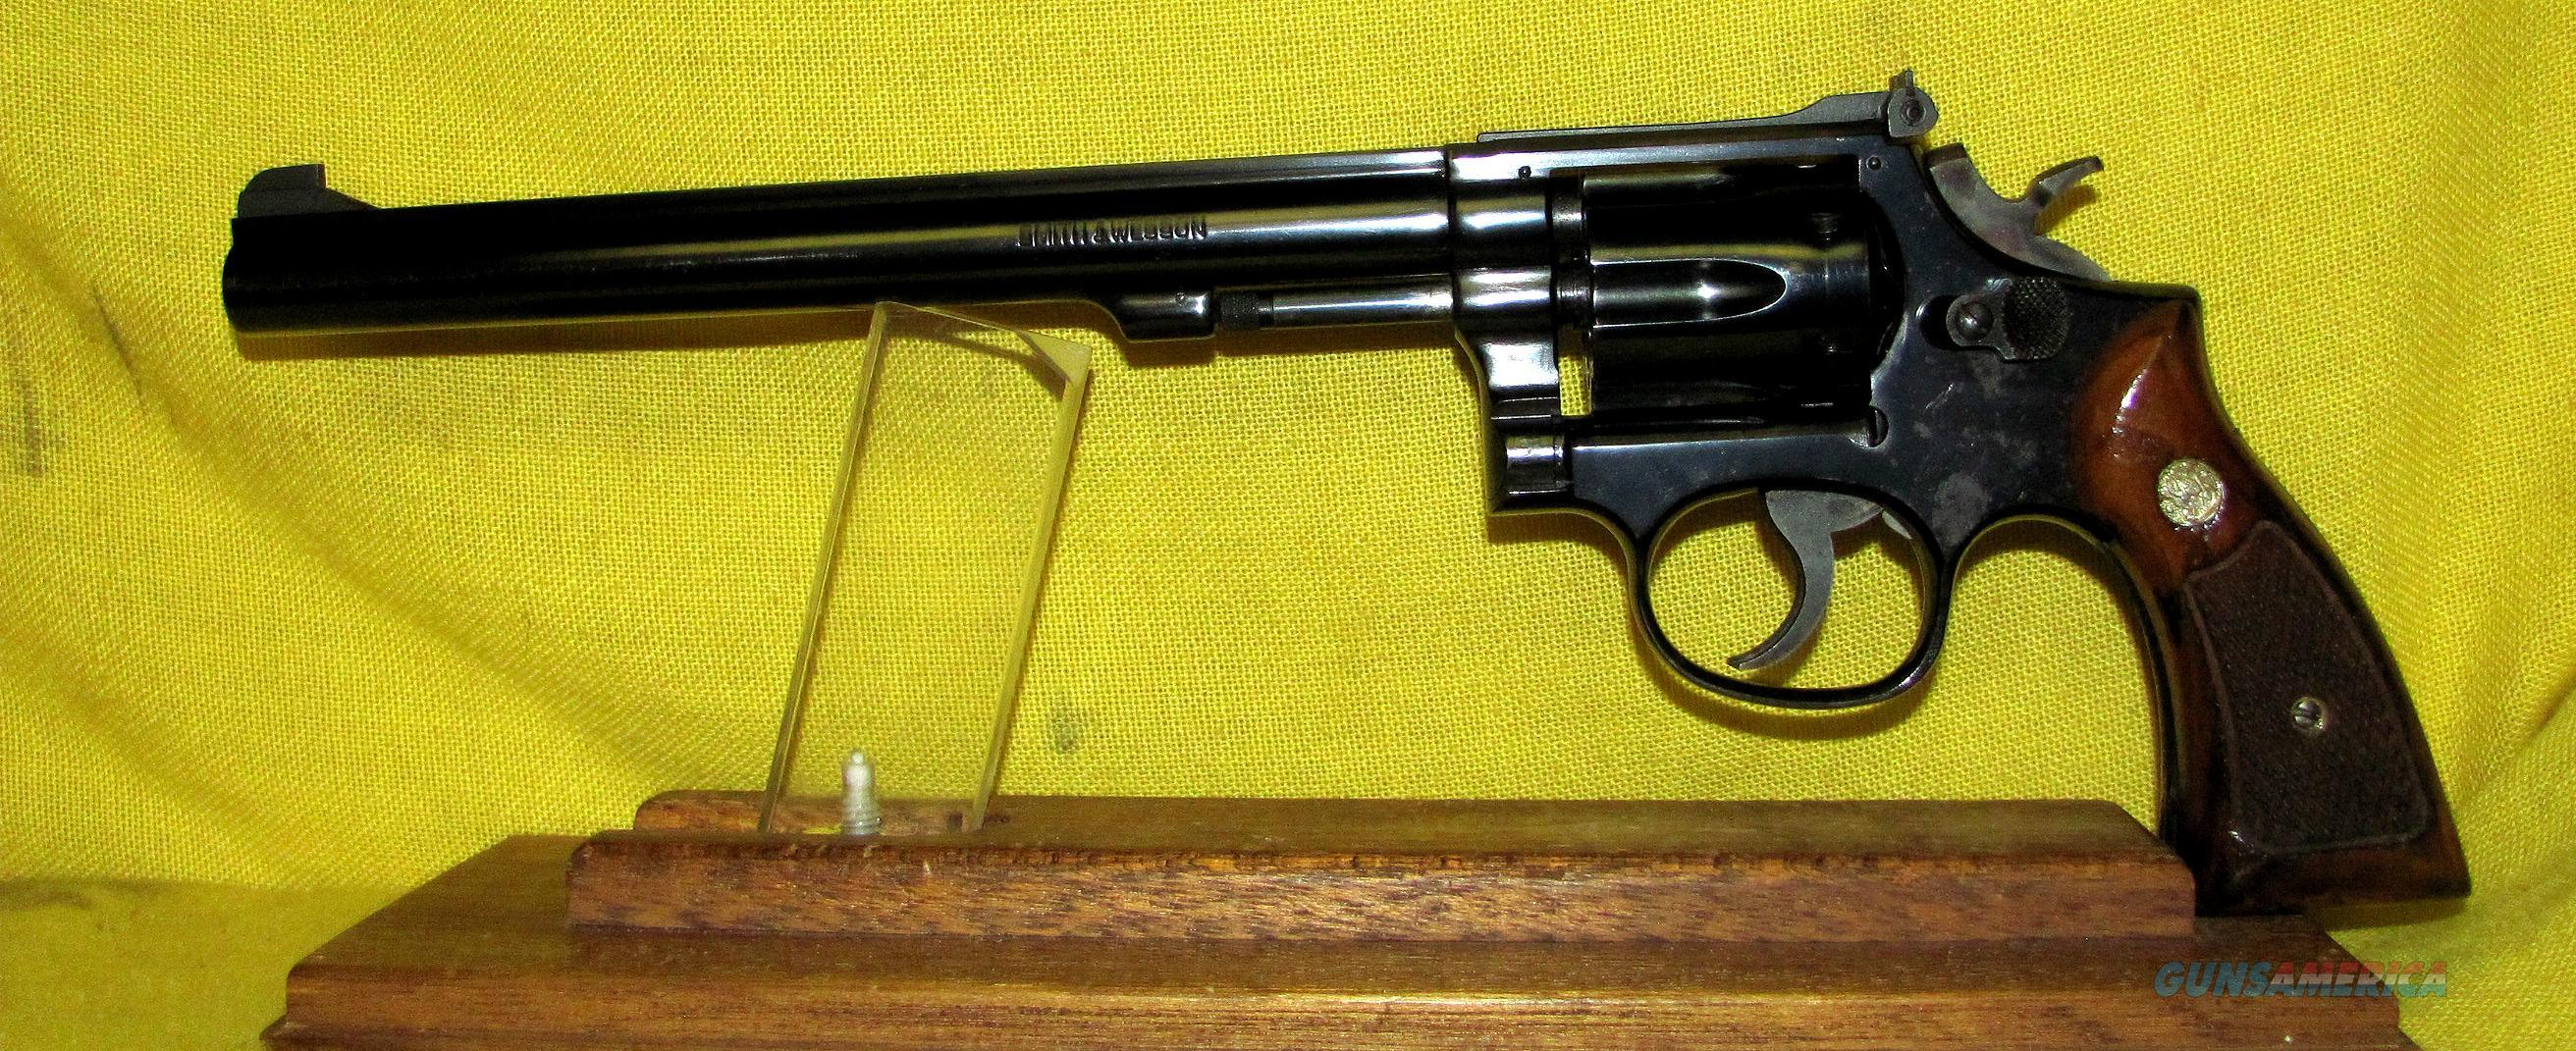 S&W 48-4  Guns > Pistols > Smith & Wesson Revolvers > Full Frame Revolver